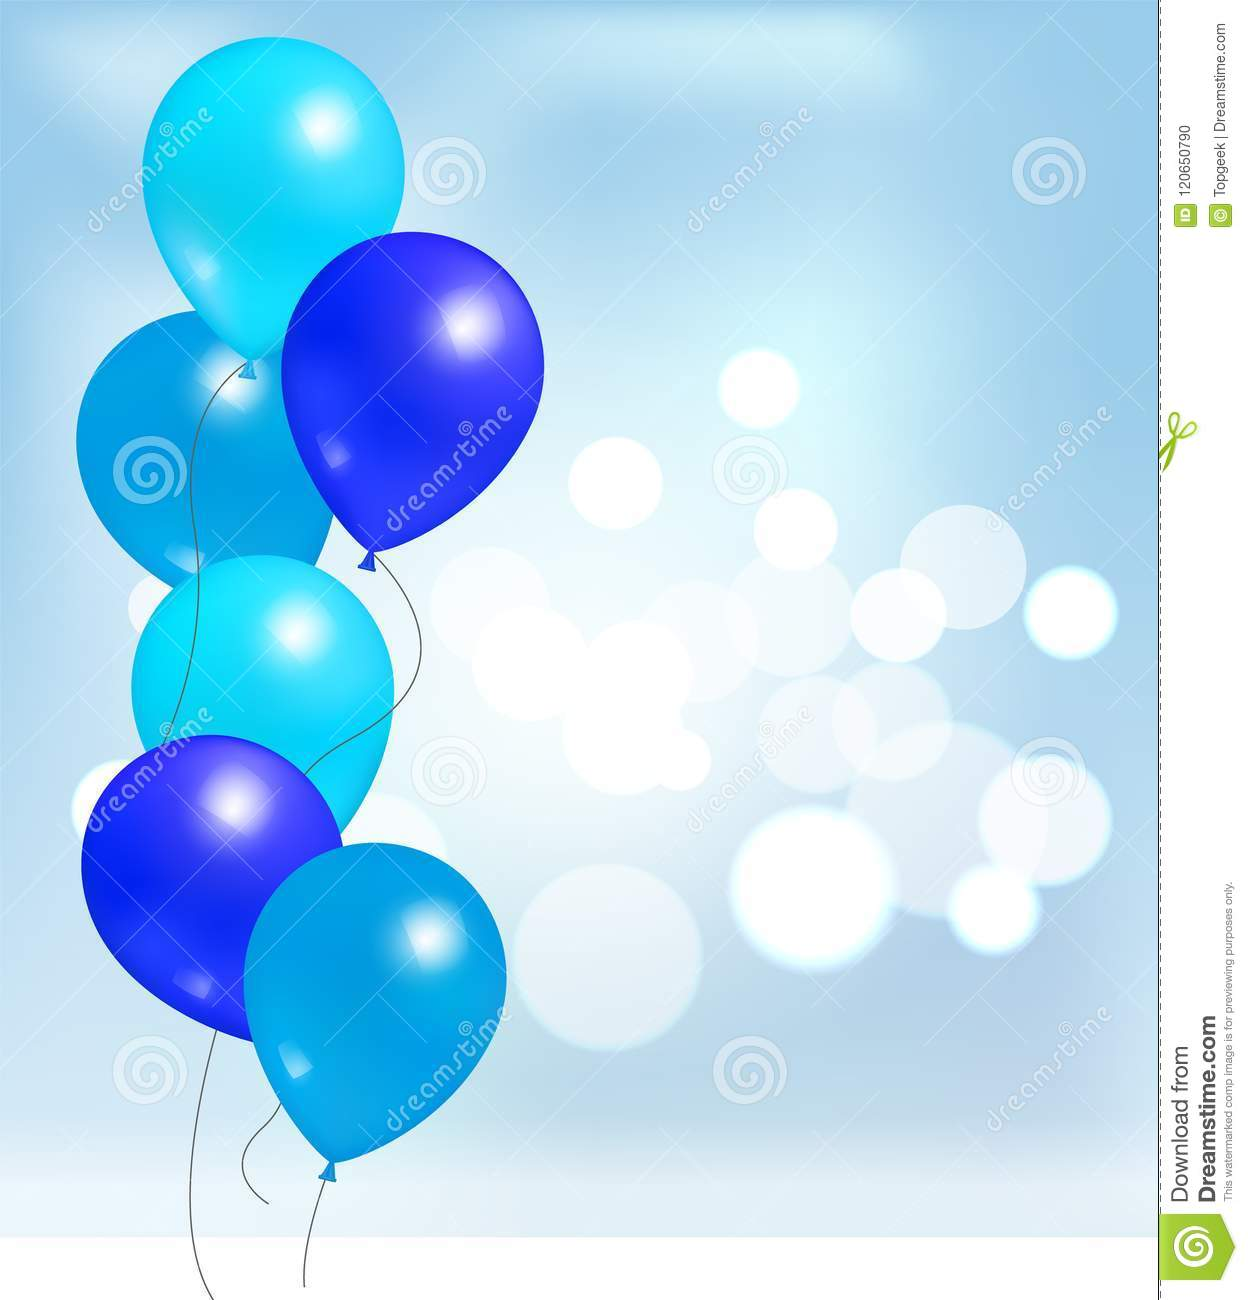 Balloons For Party Decorations Birthday Background